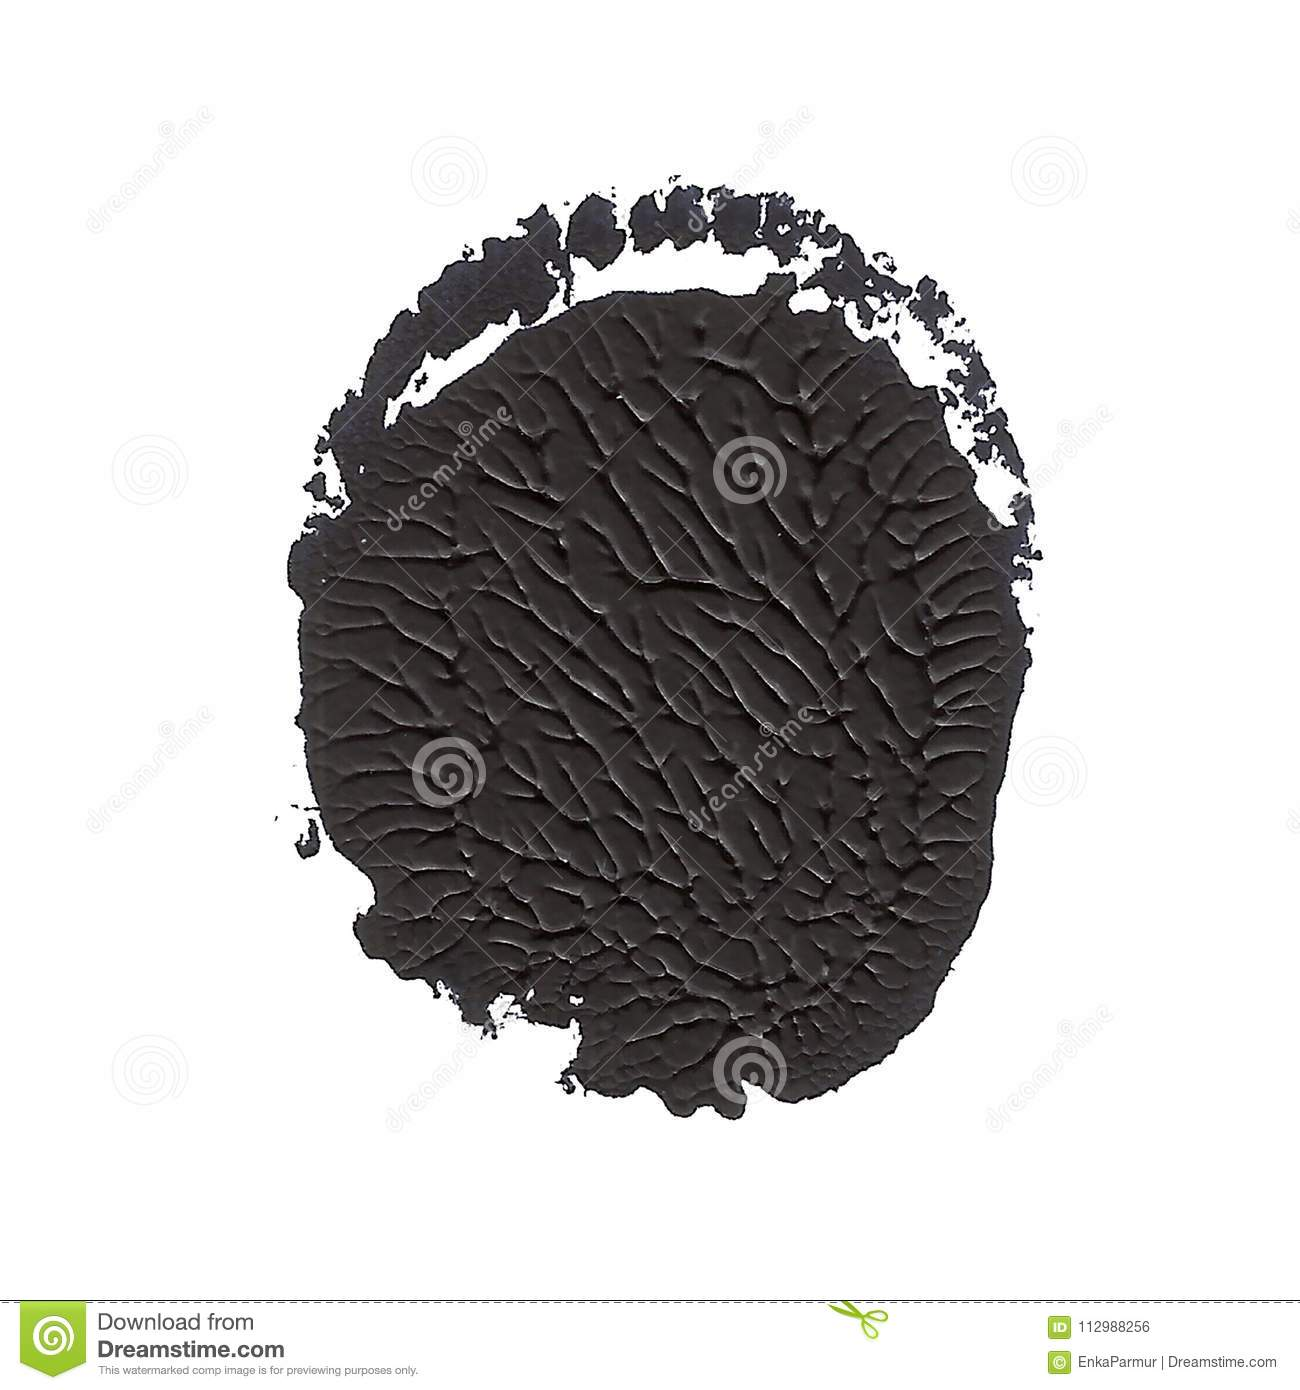 Abstract acrylic spot isolated on white background. Black textured color. Monotyped hand drawn grunge